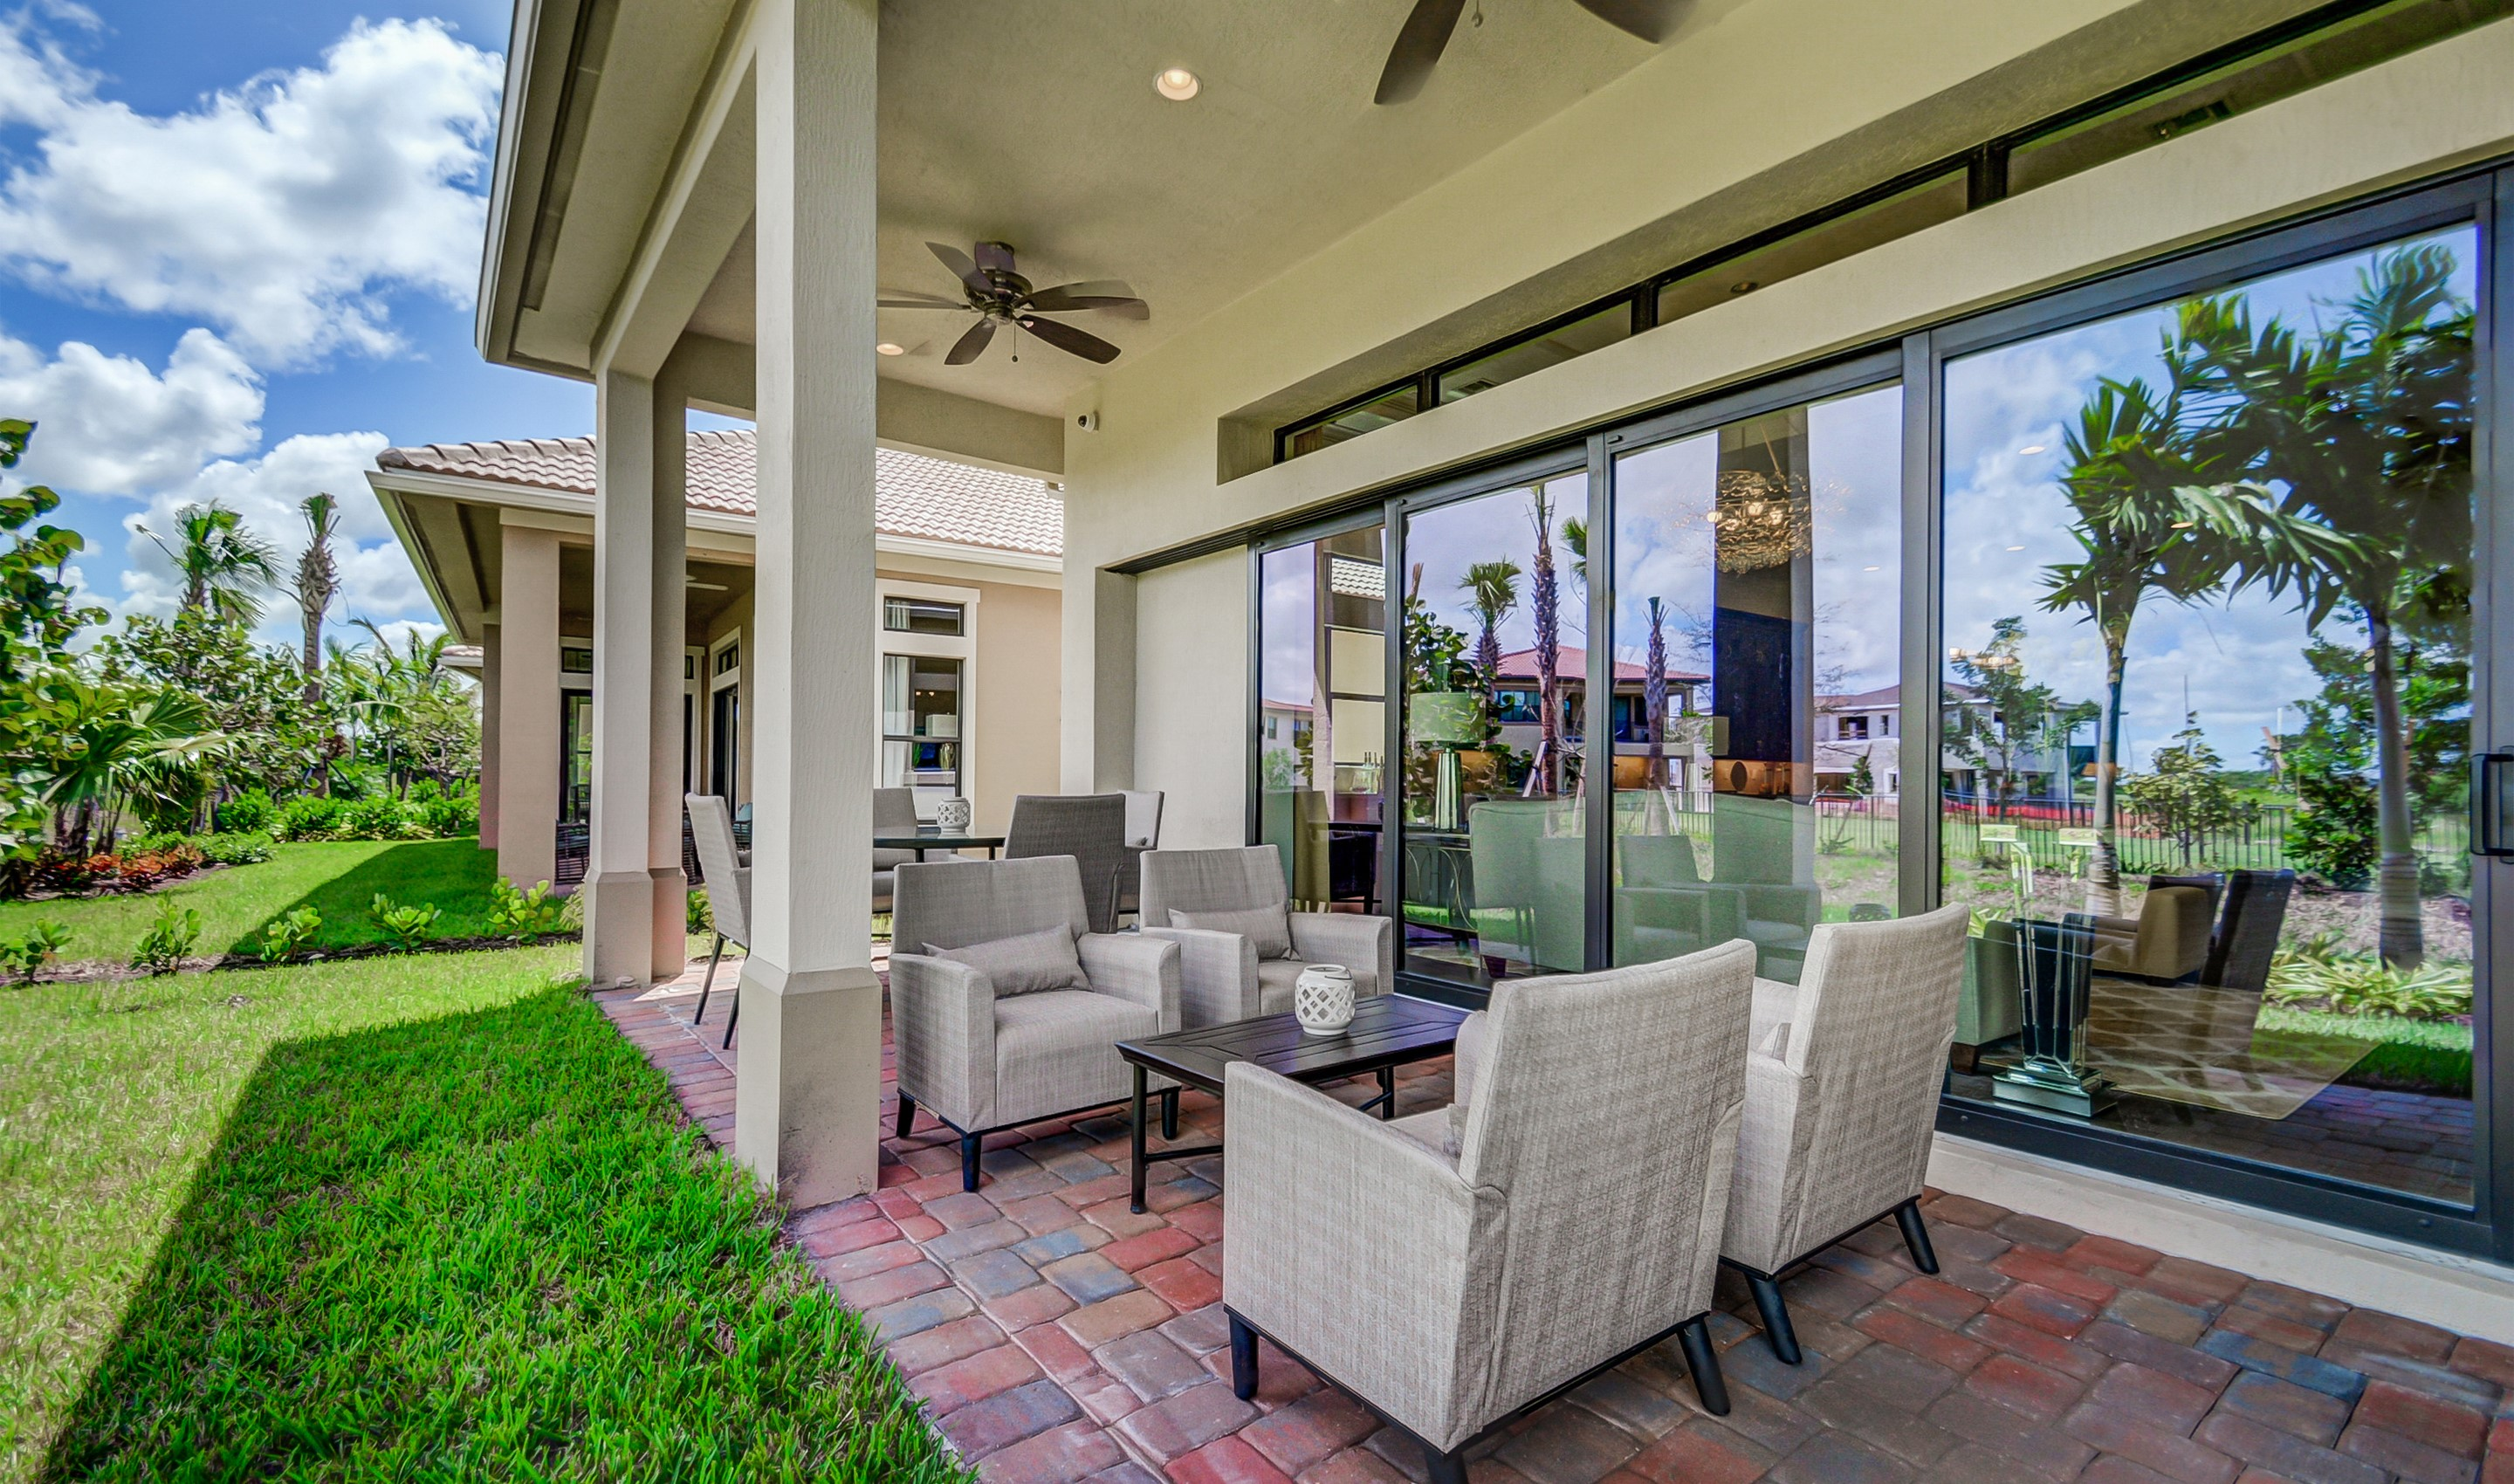 Covered lanai to entertain guests